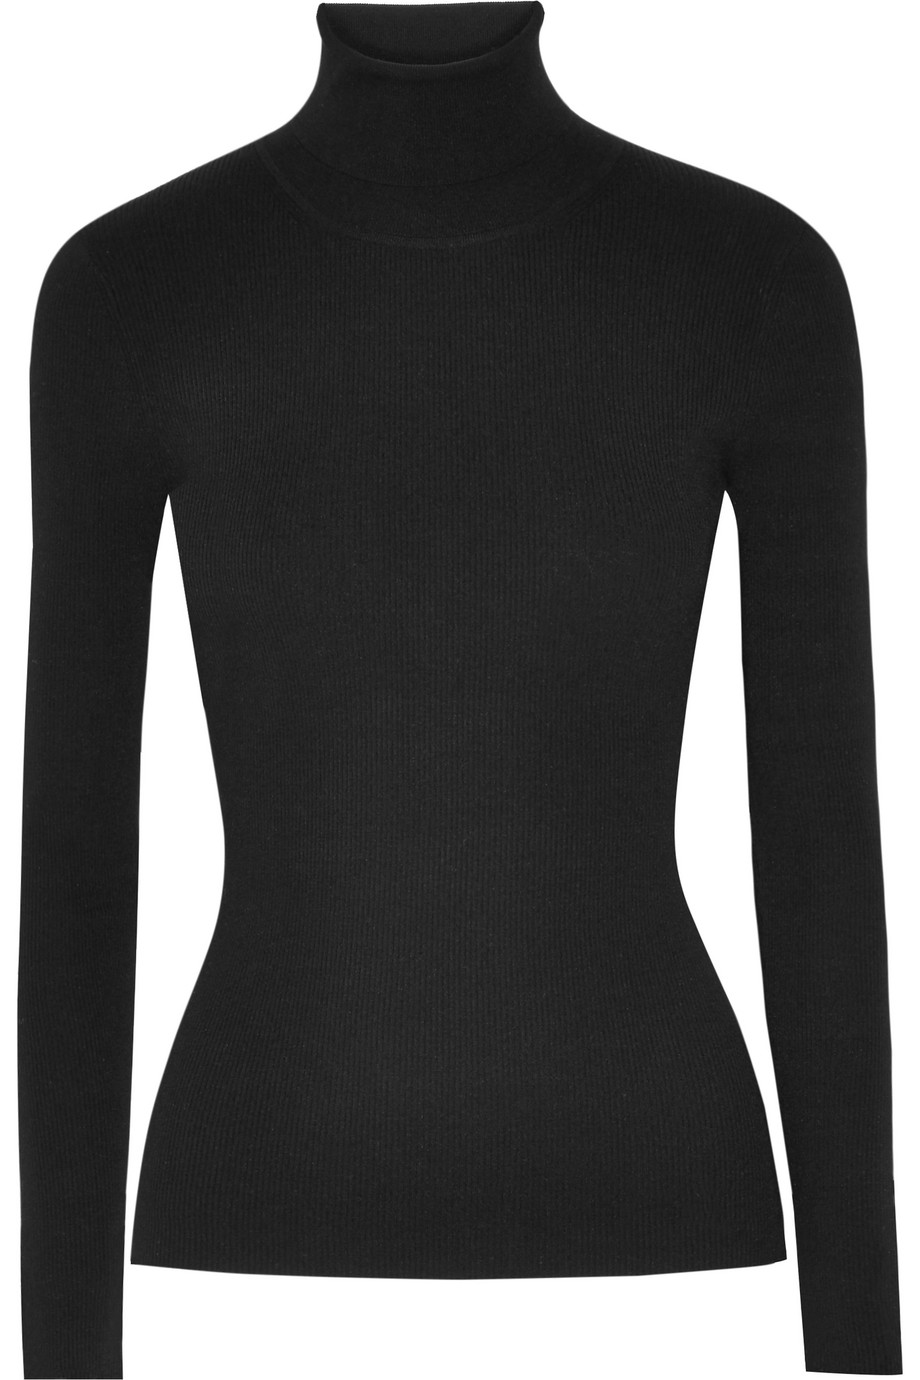 Ribbed-Knit Turtleneck Sweater, Black, Women's